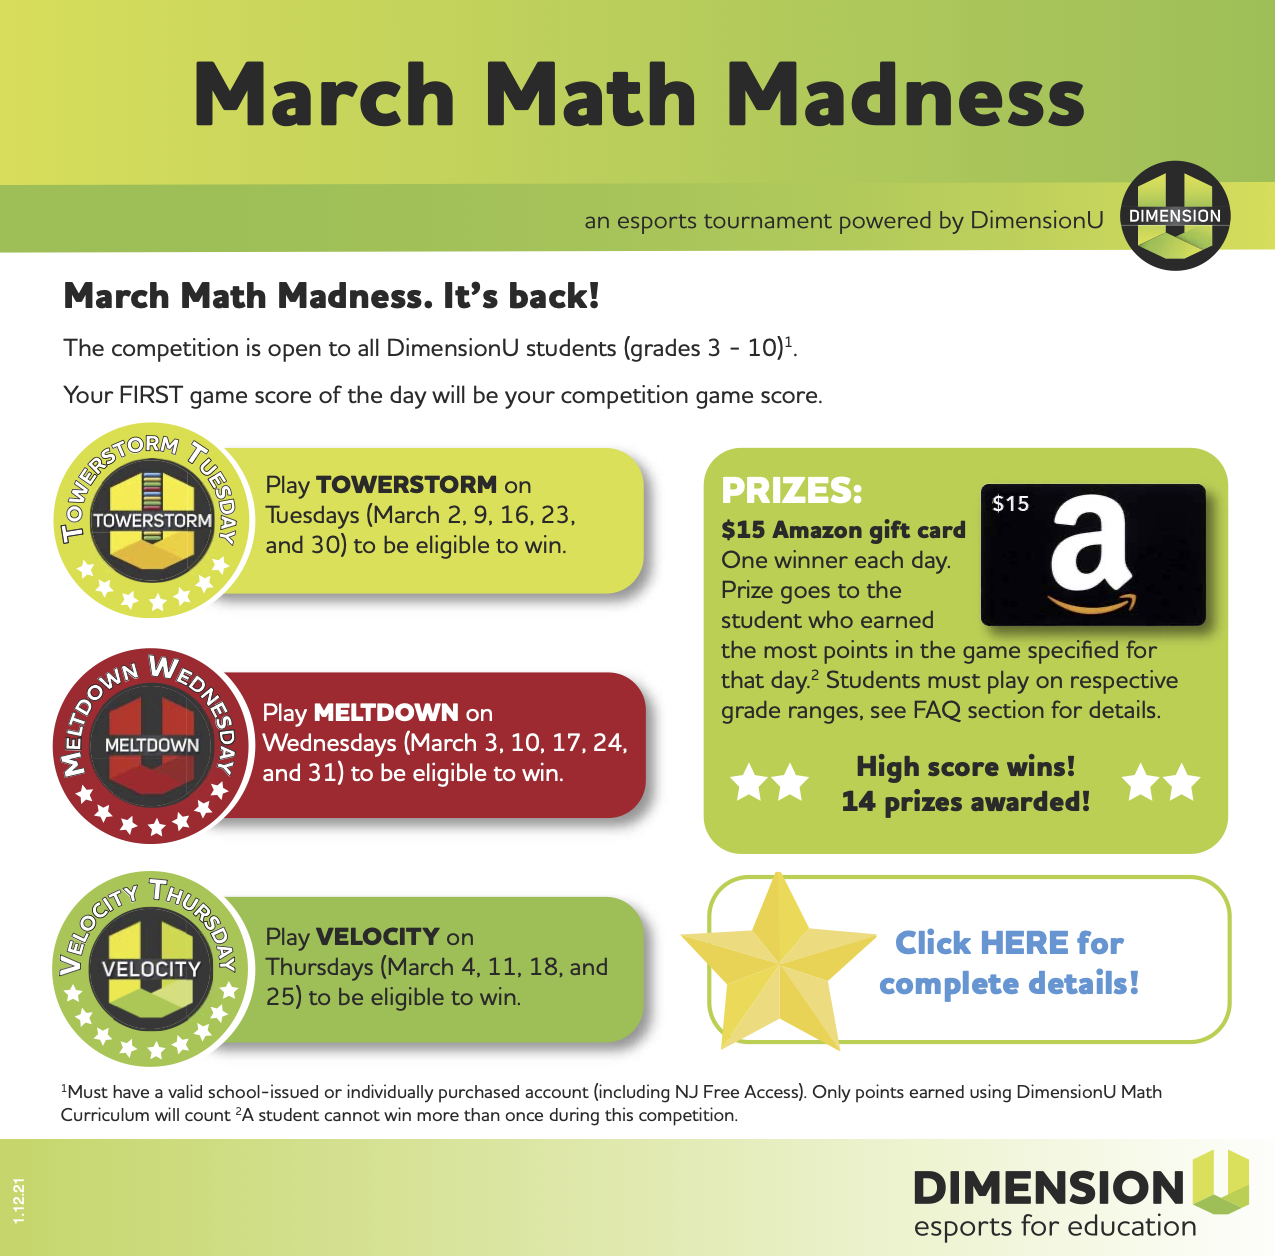 Competition rules for March Math Madness 2021